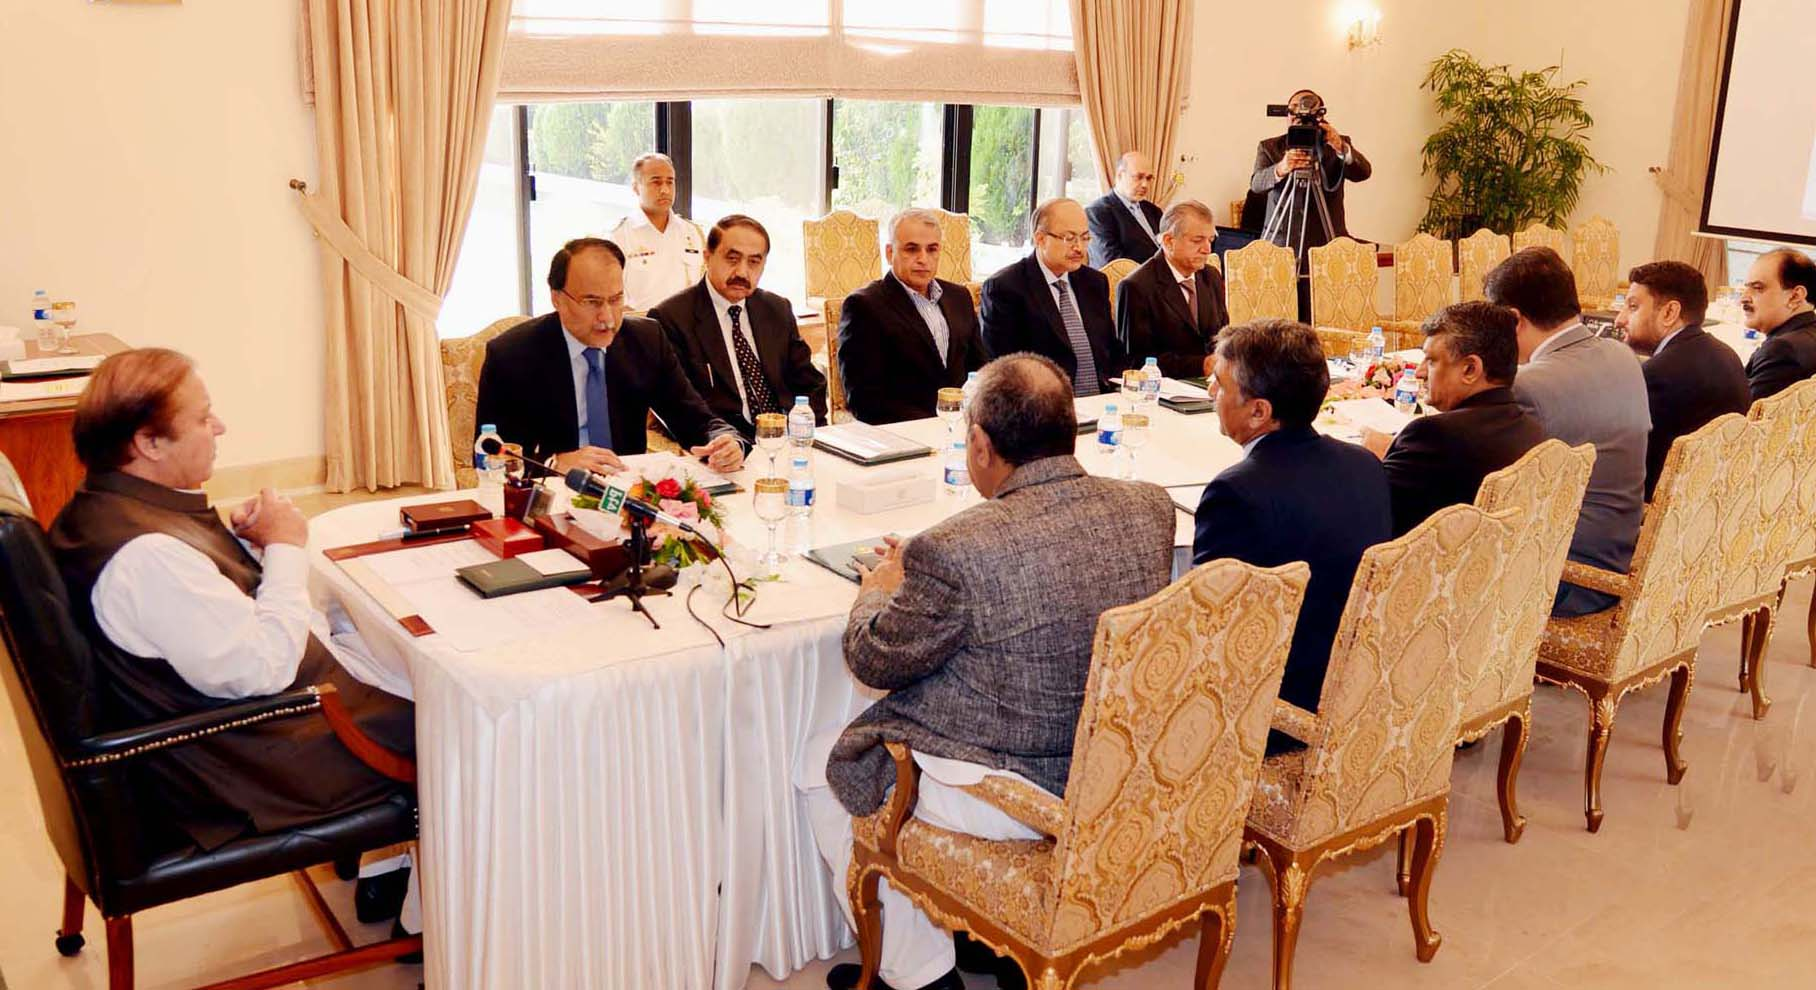 CPEC will prove to be a game changer for the region, says PM Nawaz Sharif